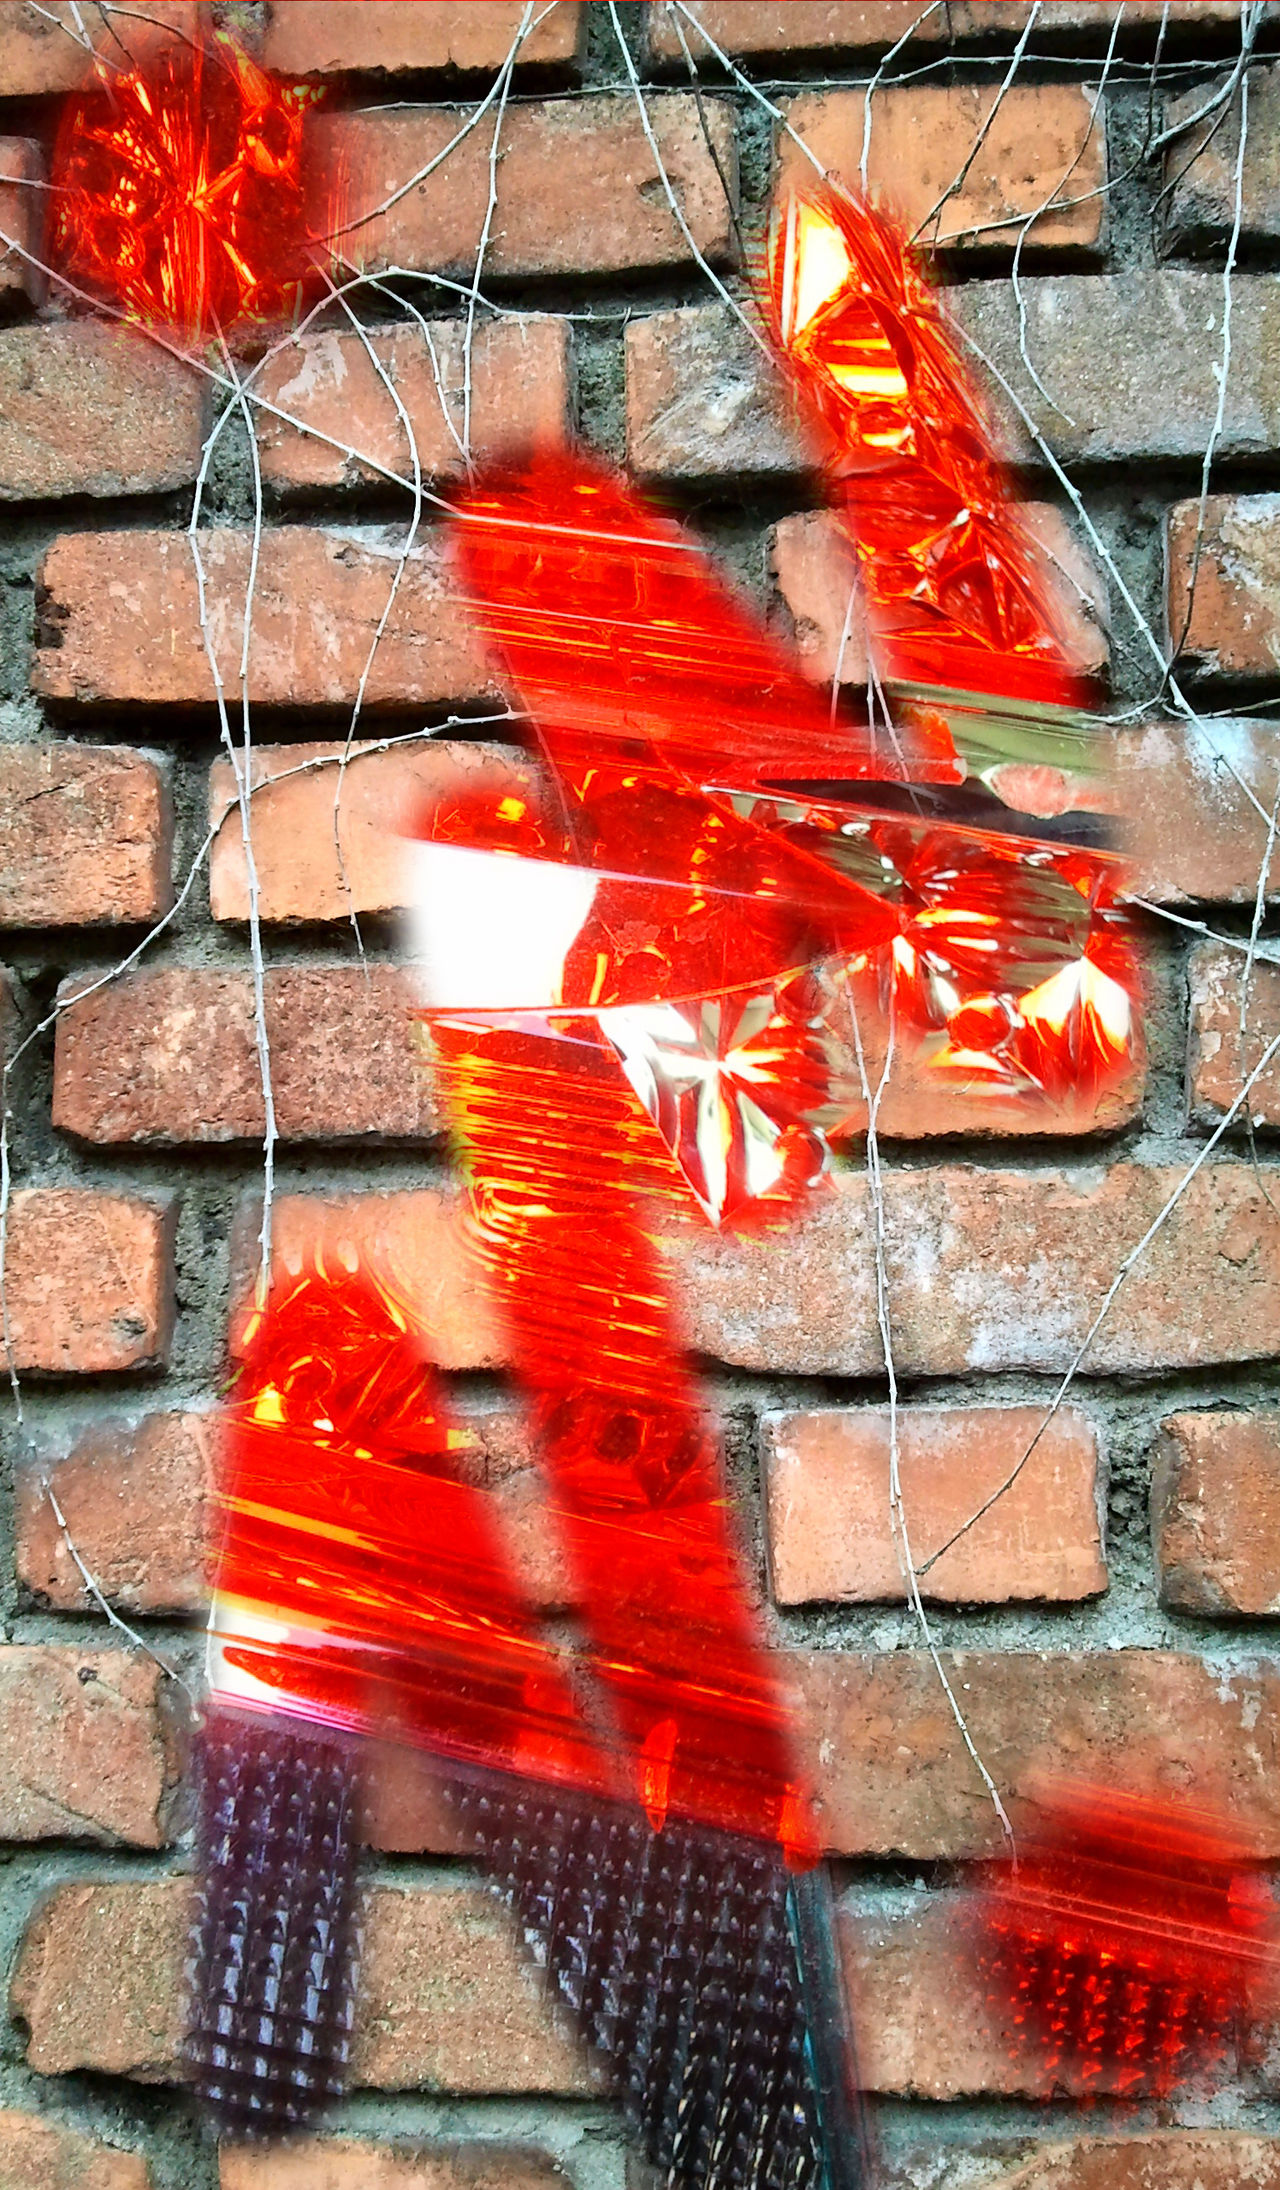 Art, Drawing, Creativity Artistic Expression ArtWork Artwork By Me Brick Wall Close-up Day Fantasy Dreaming No People Outdoors Patriotism Red